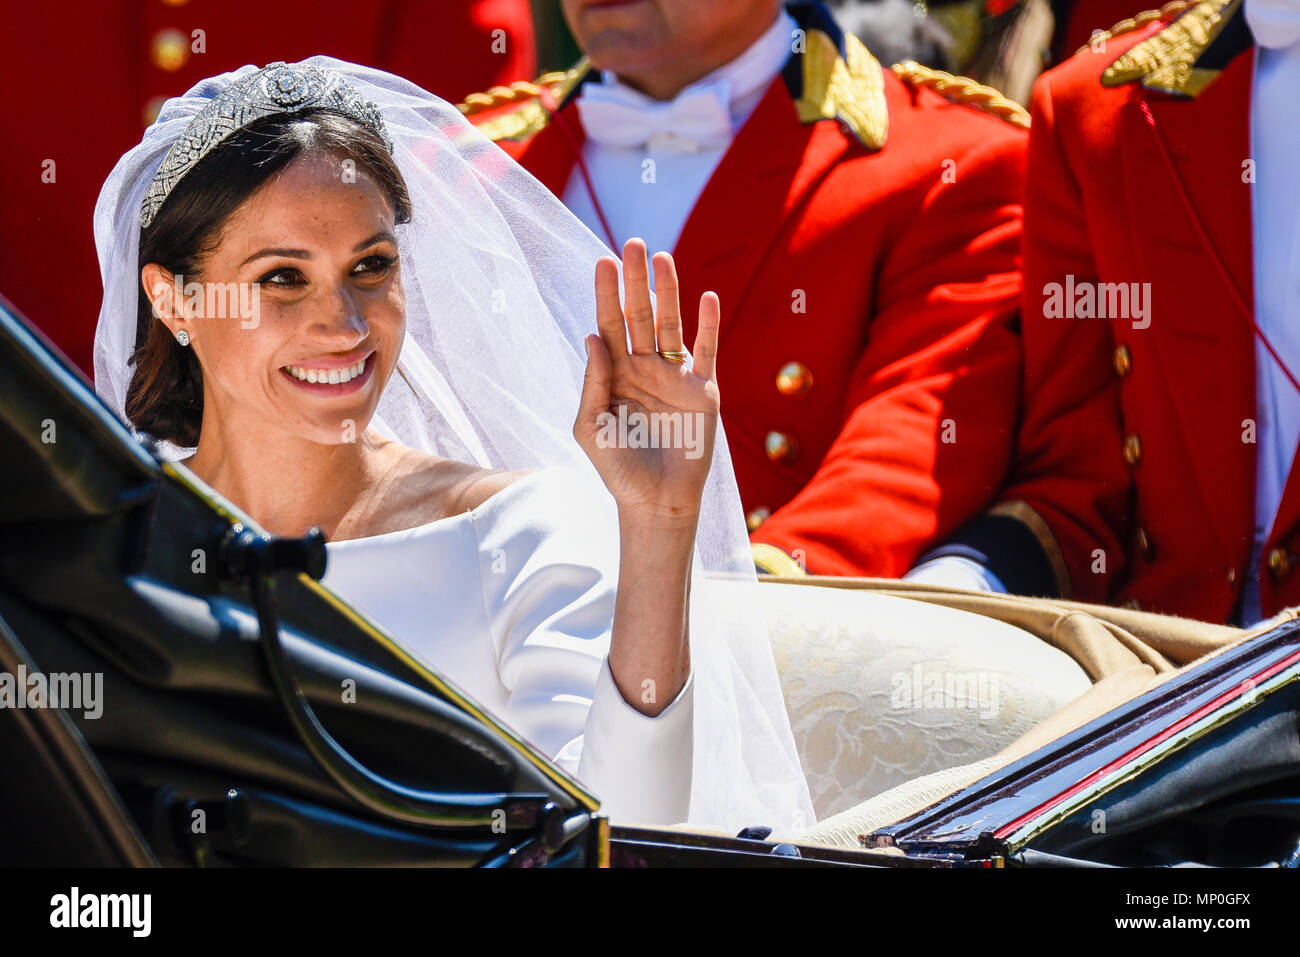 meghan markle in carriage procession after the royal wedding at windsor on the long walk duchess of sussex wedding dress tiara and veil waving stock photo alamy https www alamy com meghan markle in carriage procession after the royal wedding at windsor on the long walk duchess of sussex wedding dress tiara and veil waving image185639102 html